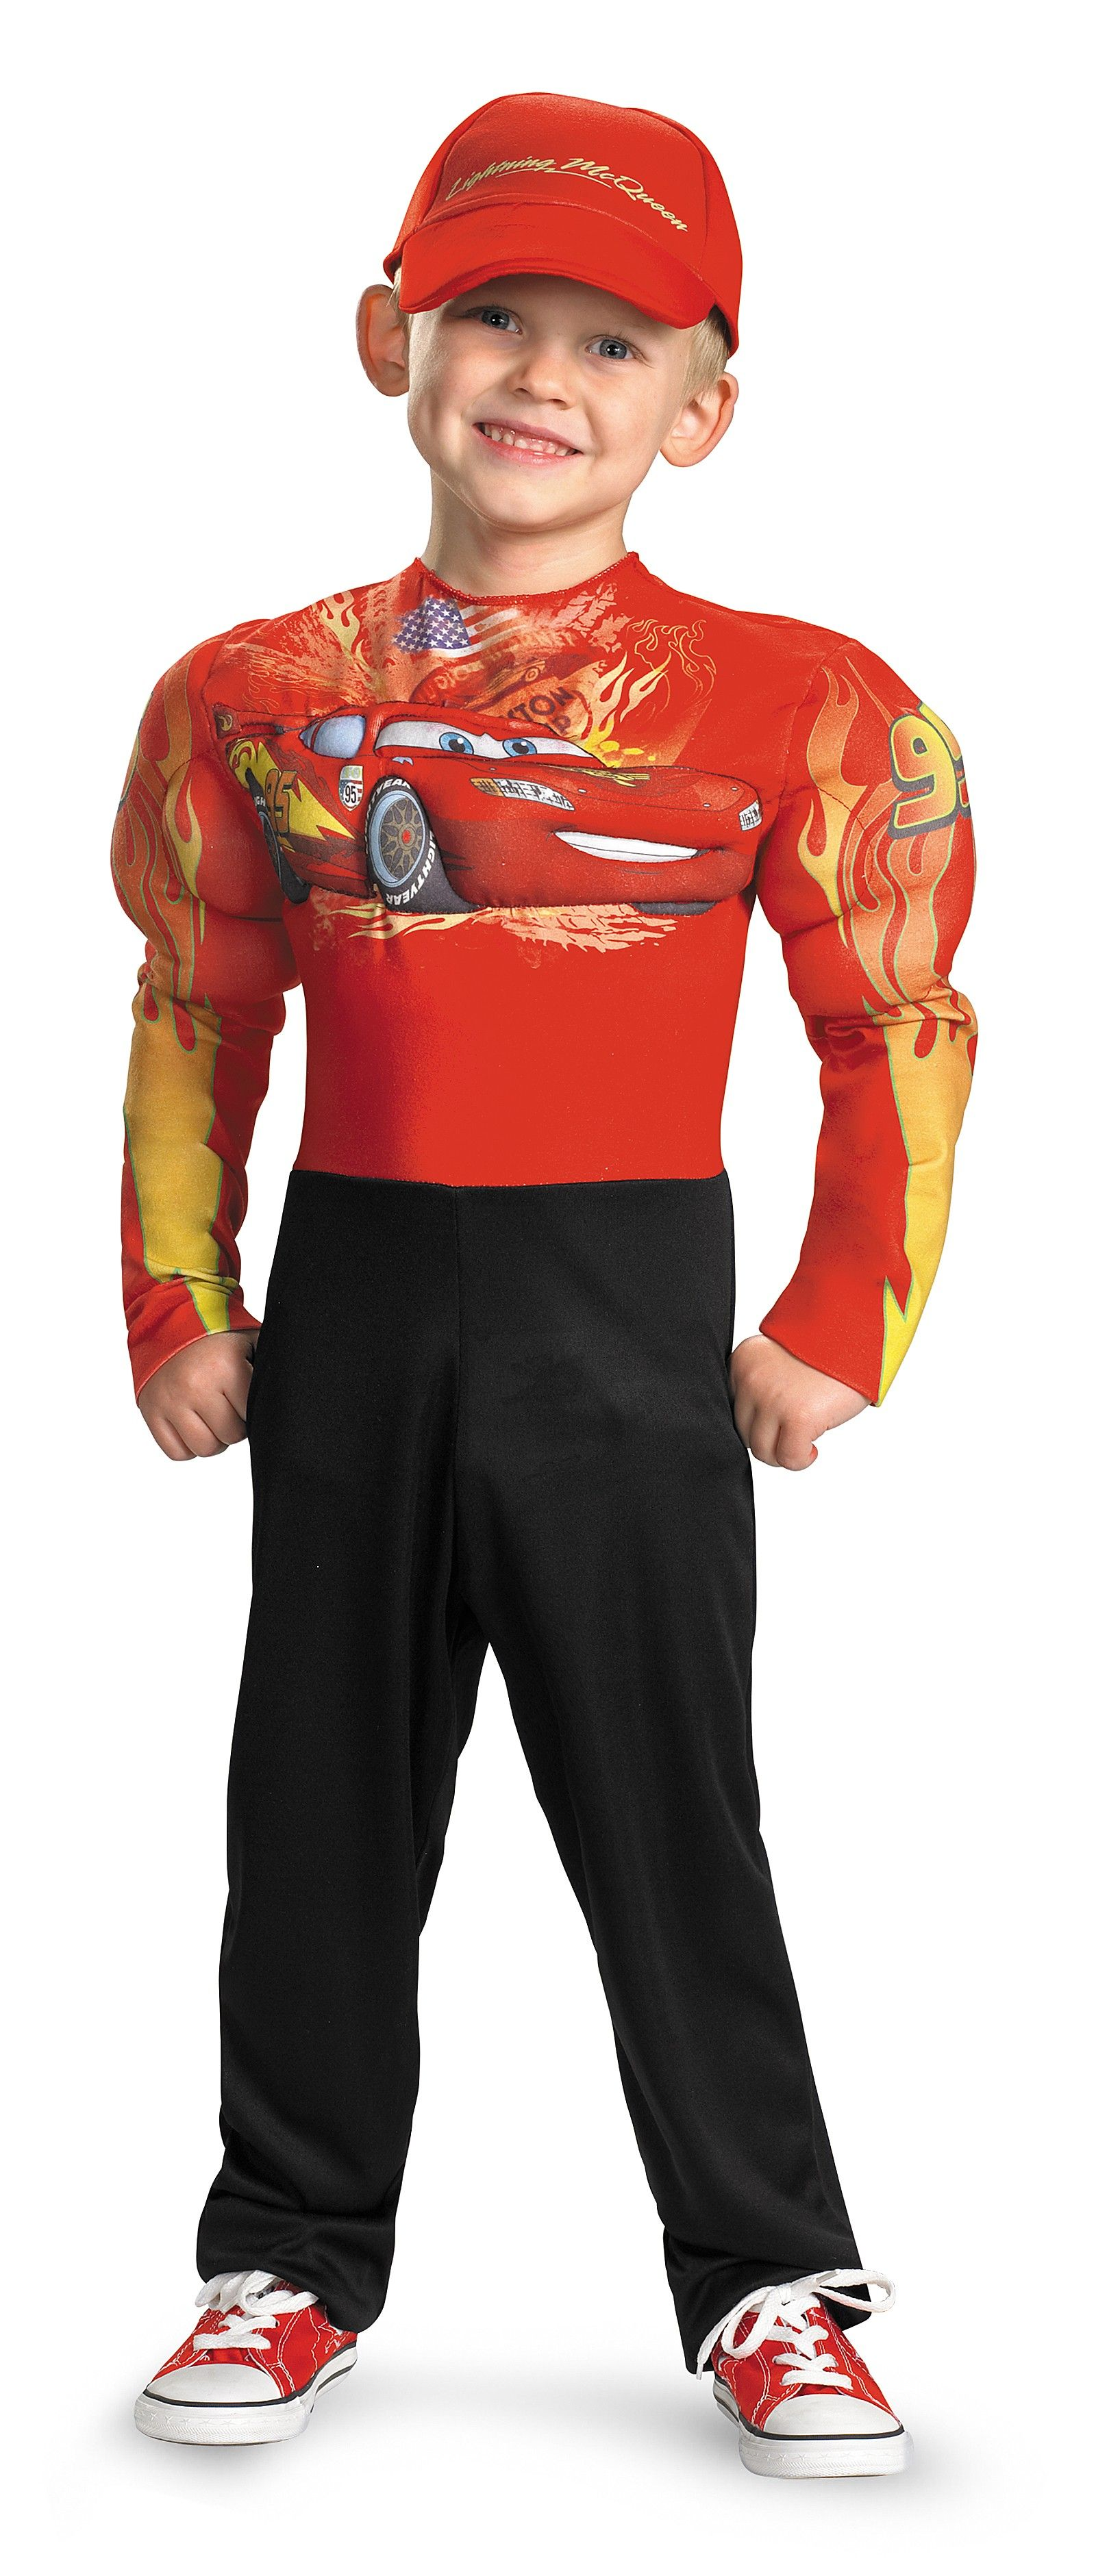 Cars 2 - Lightning McQueen Muscle Toddler / Child Costume | Disney ...